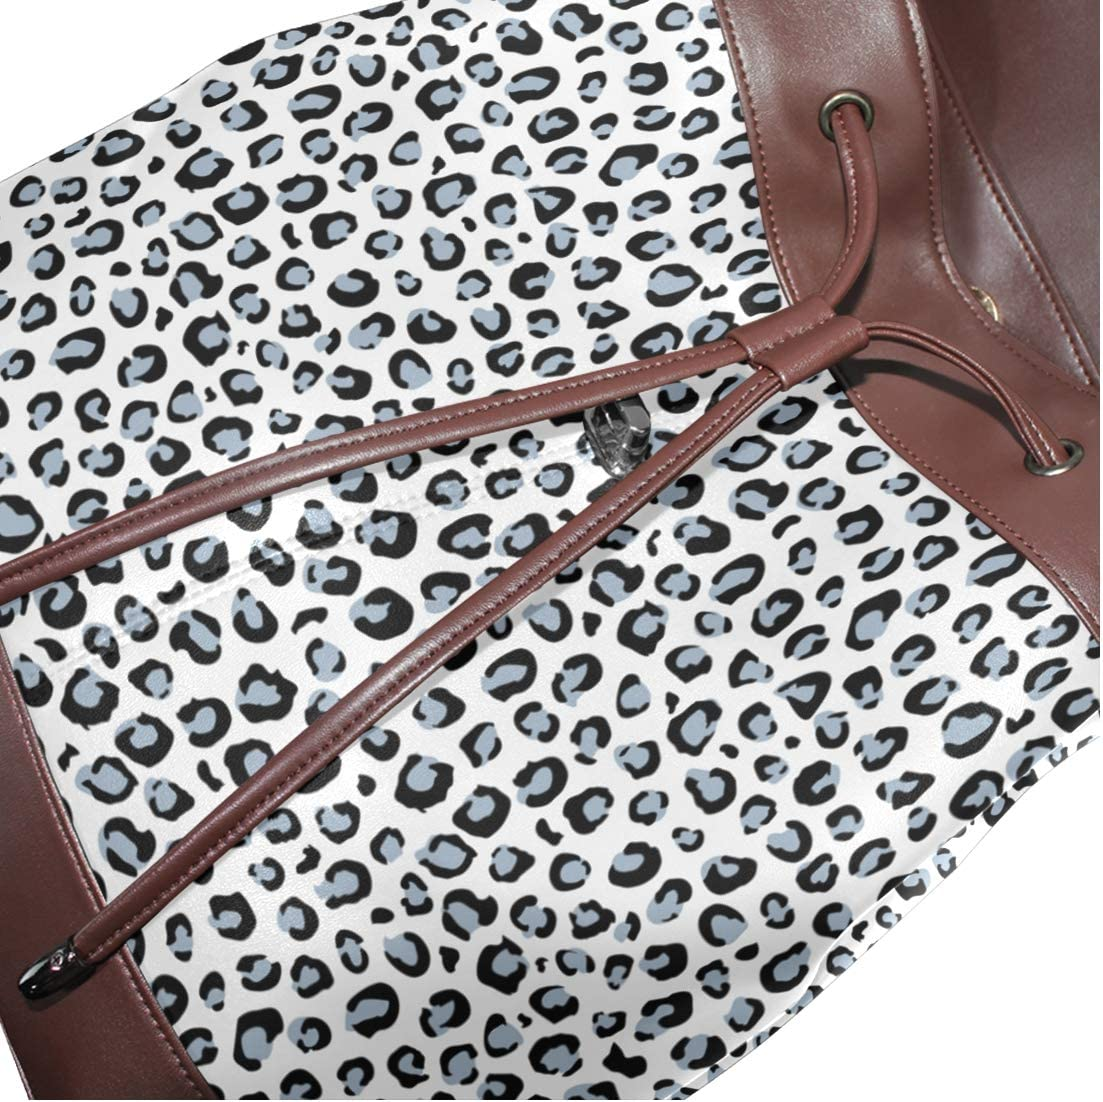 Leather Pattern With Leopard Skin Backpack Daypack Bag Women